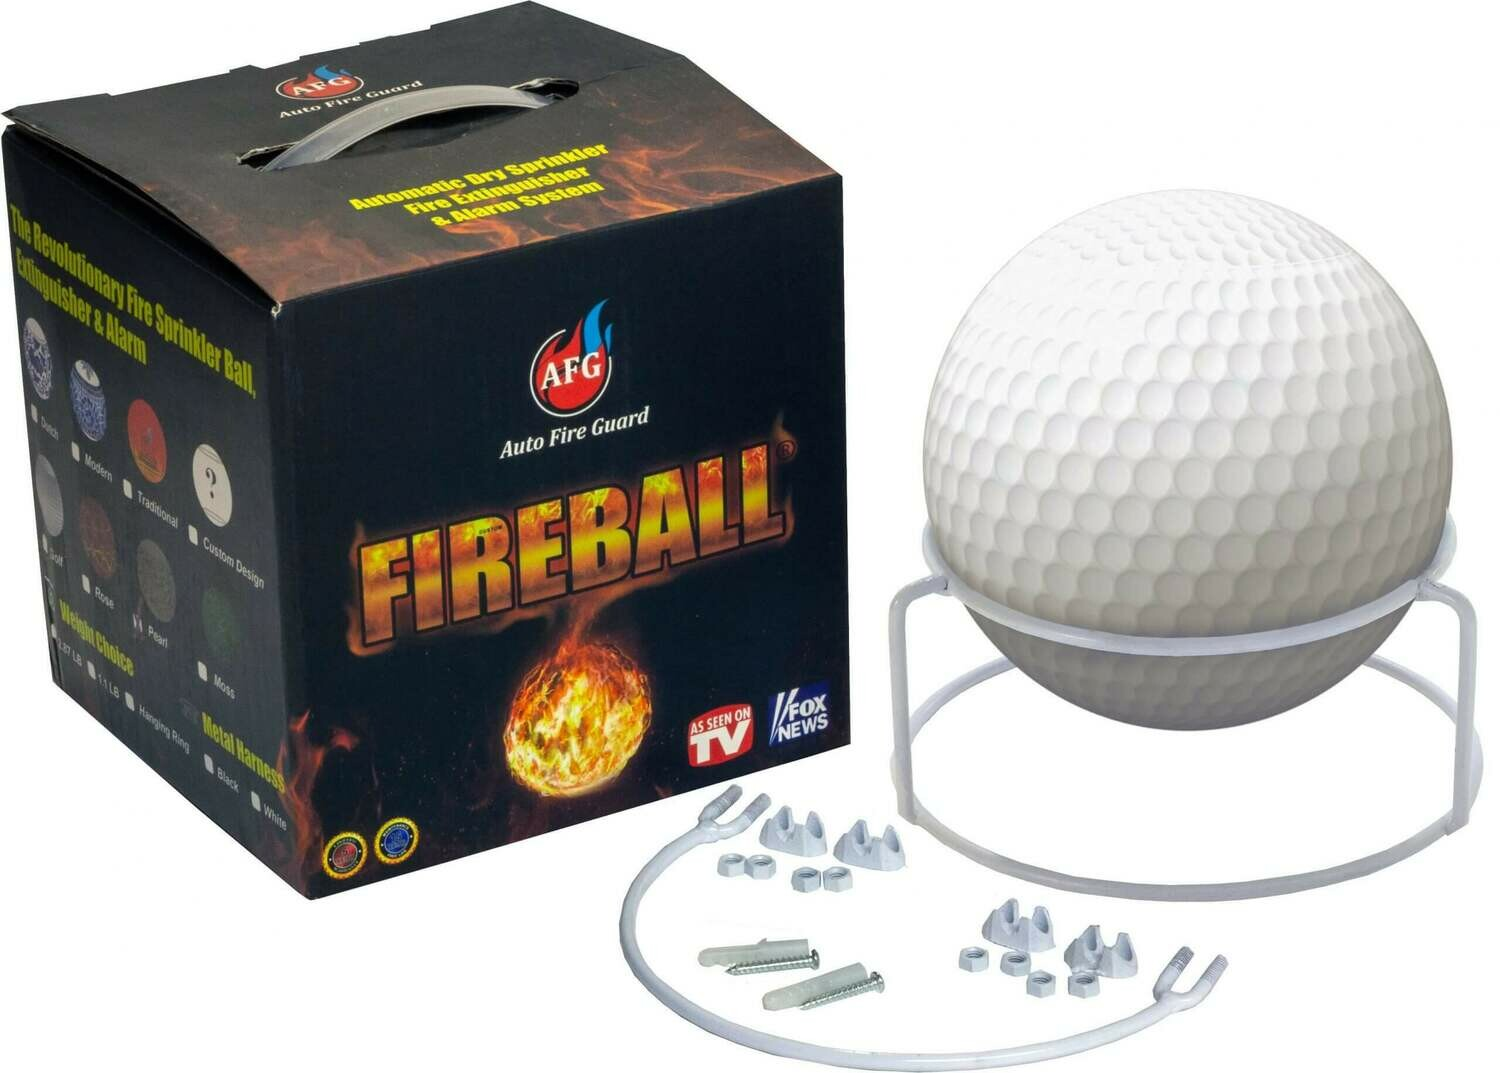 The Golf Ball Fireball